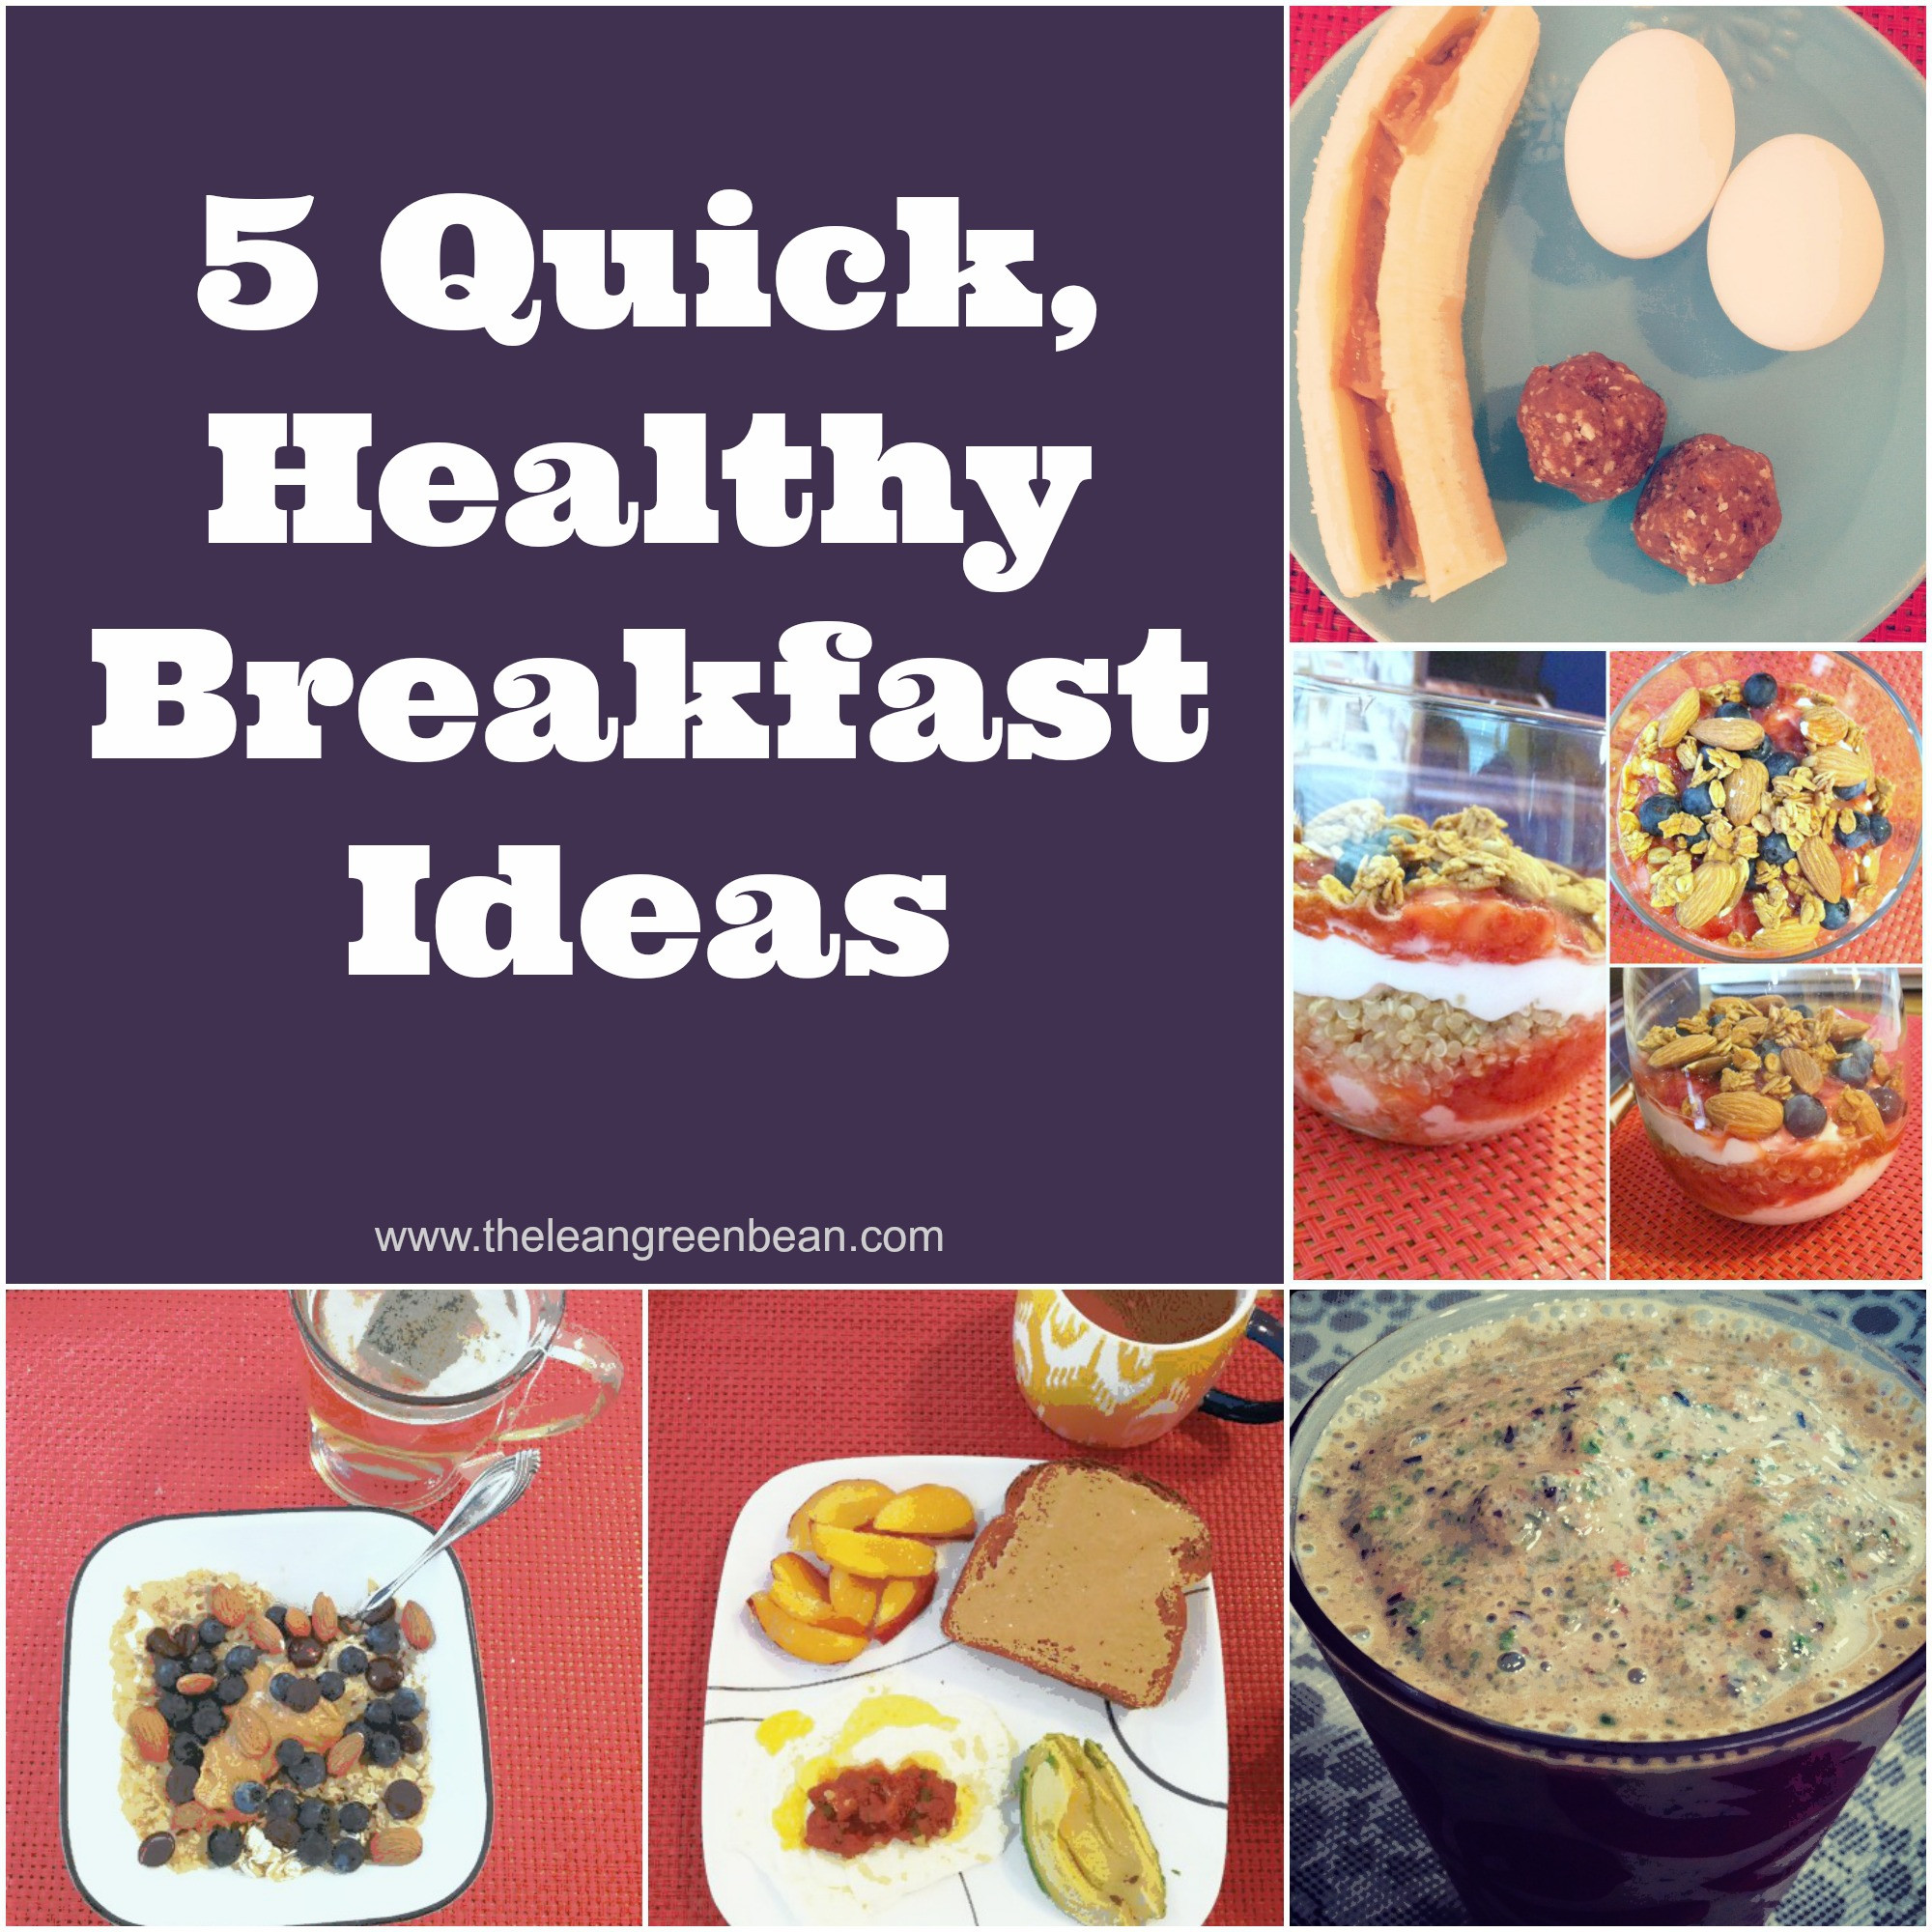 Quick Healthy Breakfast On The Go  5 Quick Healthy Breakfast Ideas from a Registered Dietitian